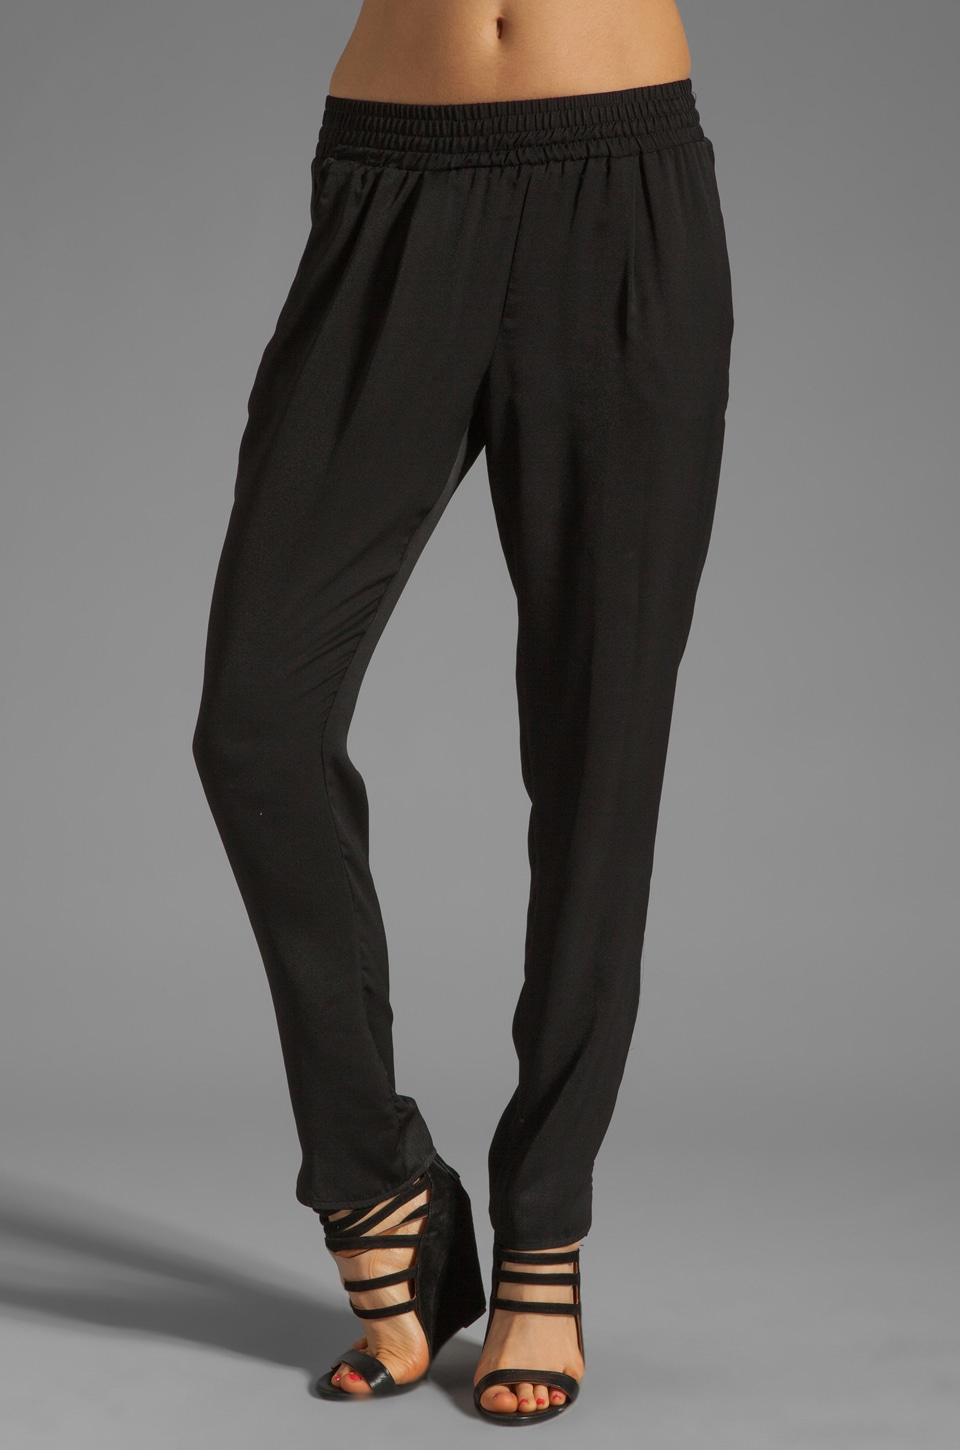 Charles Henry Gym Pants in Black